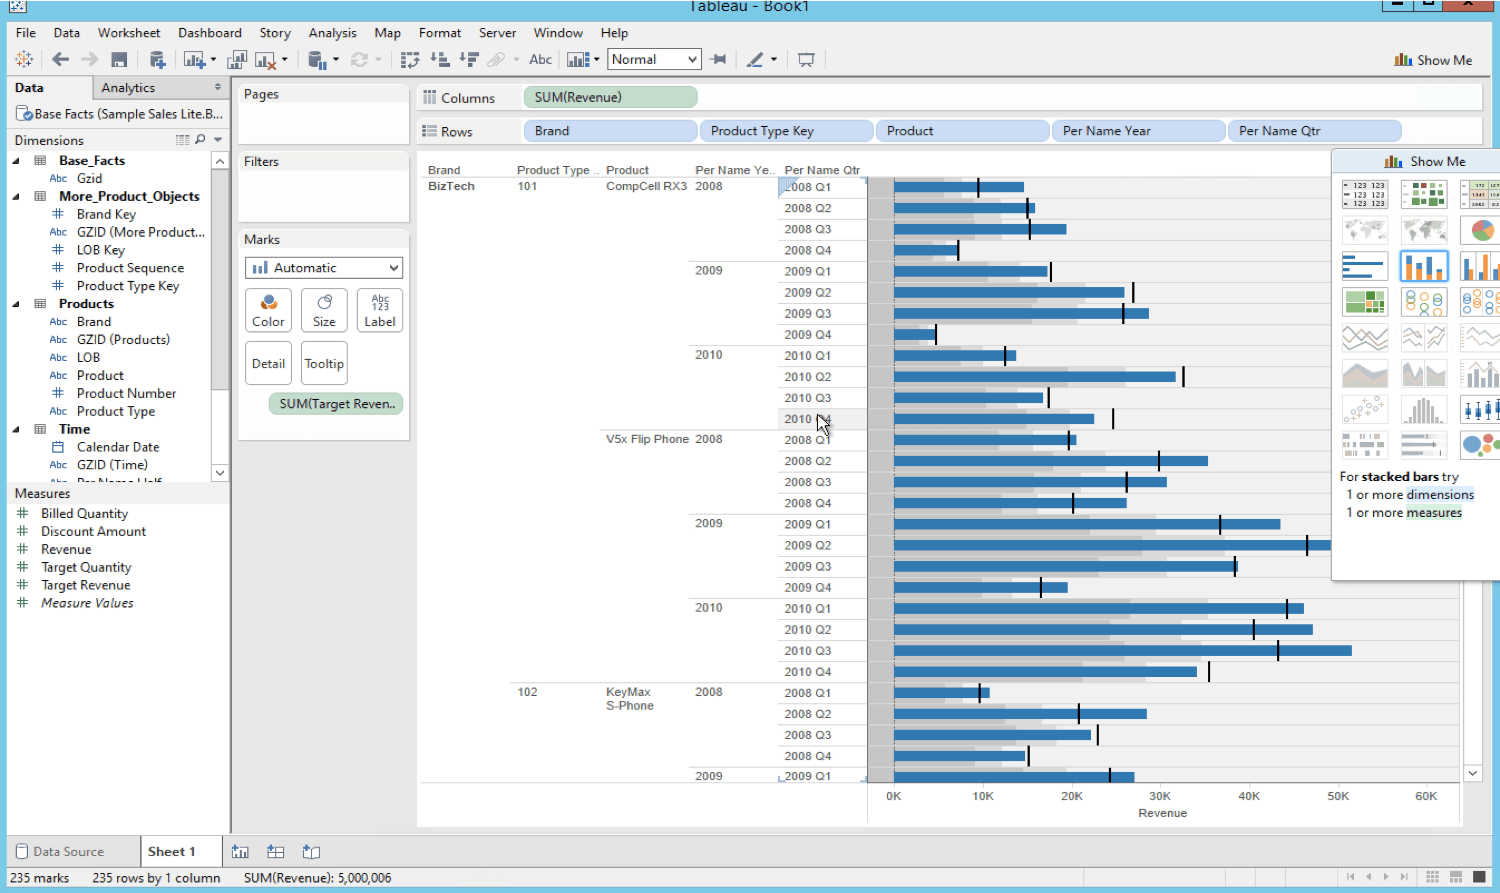 Extract Obiee Data Using Tableau Desktop